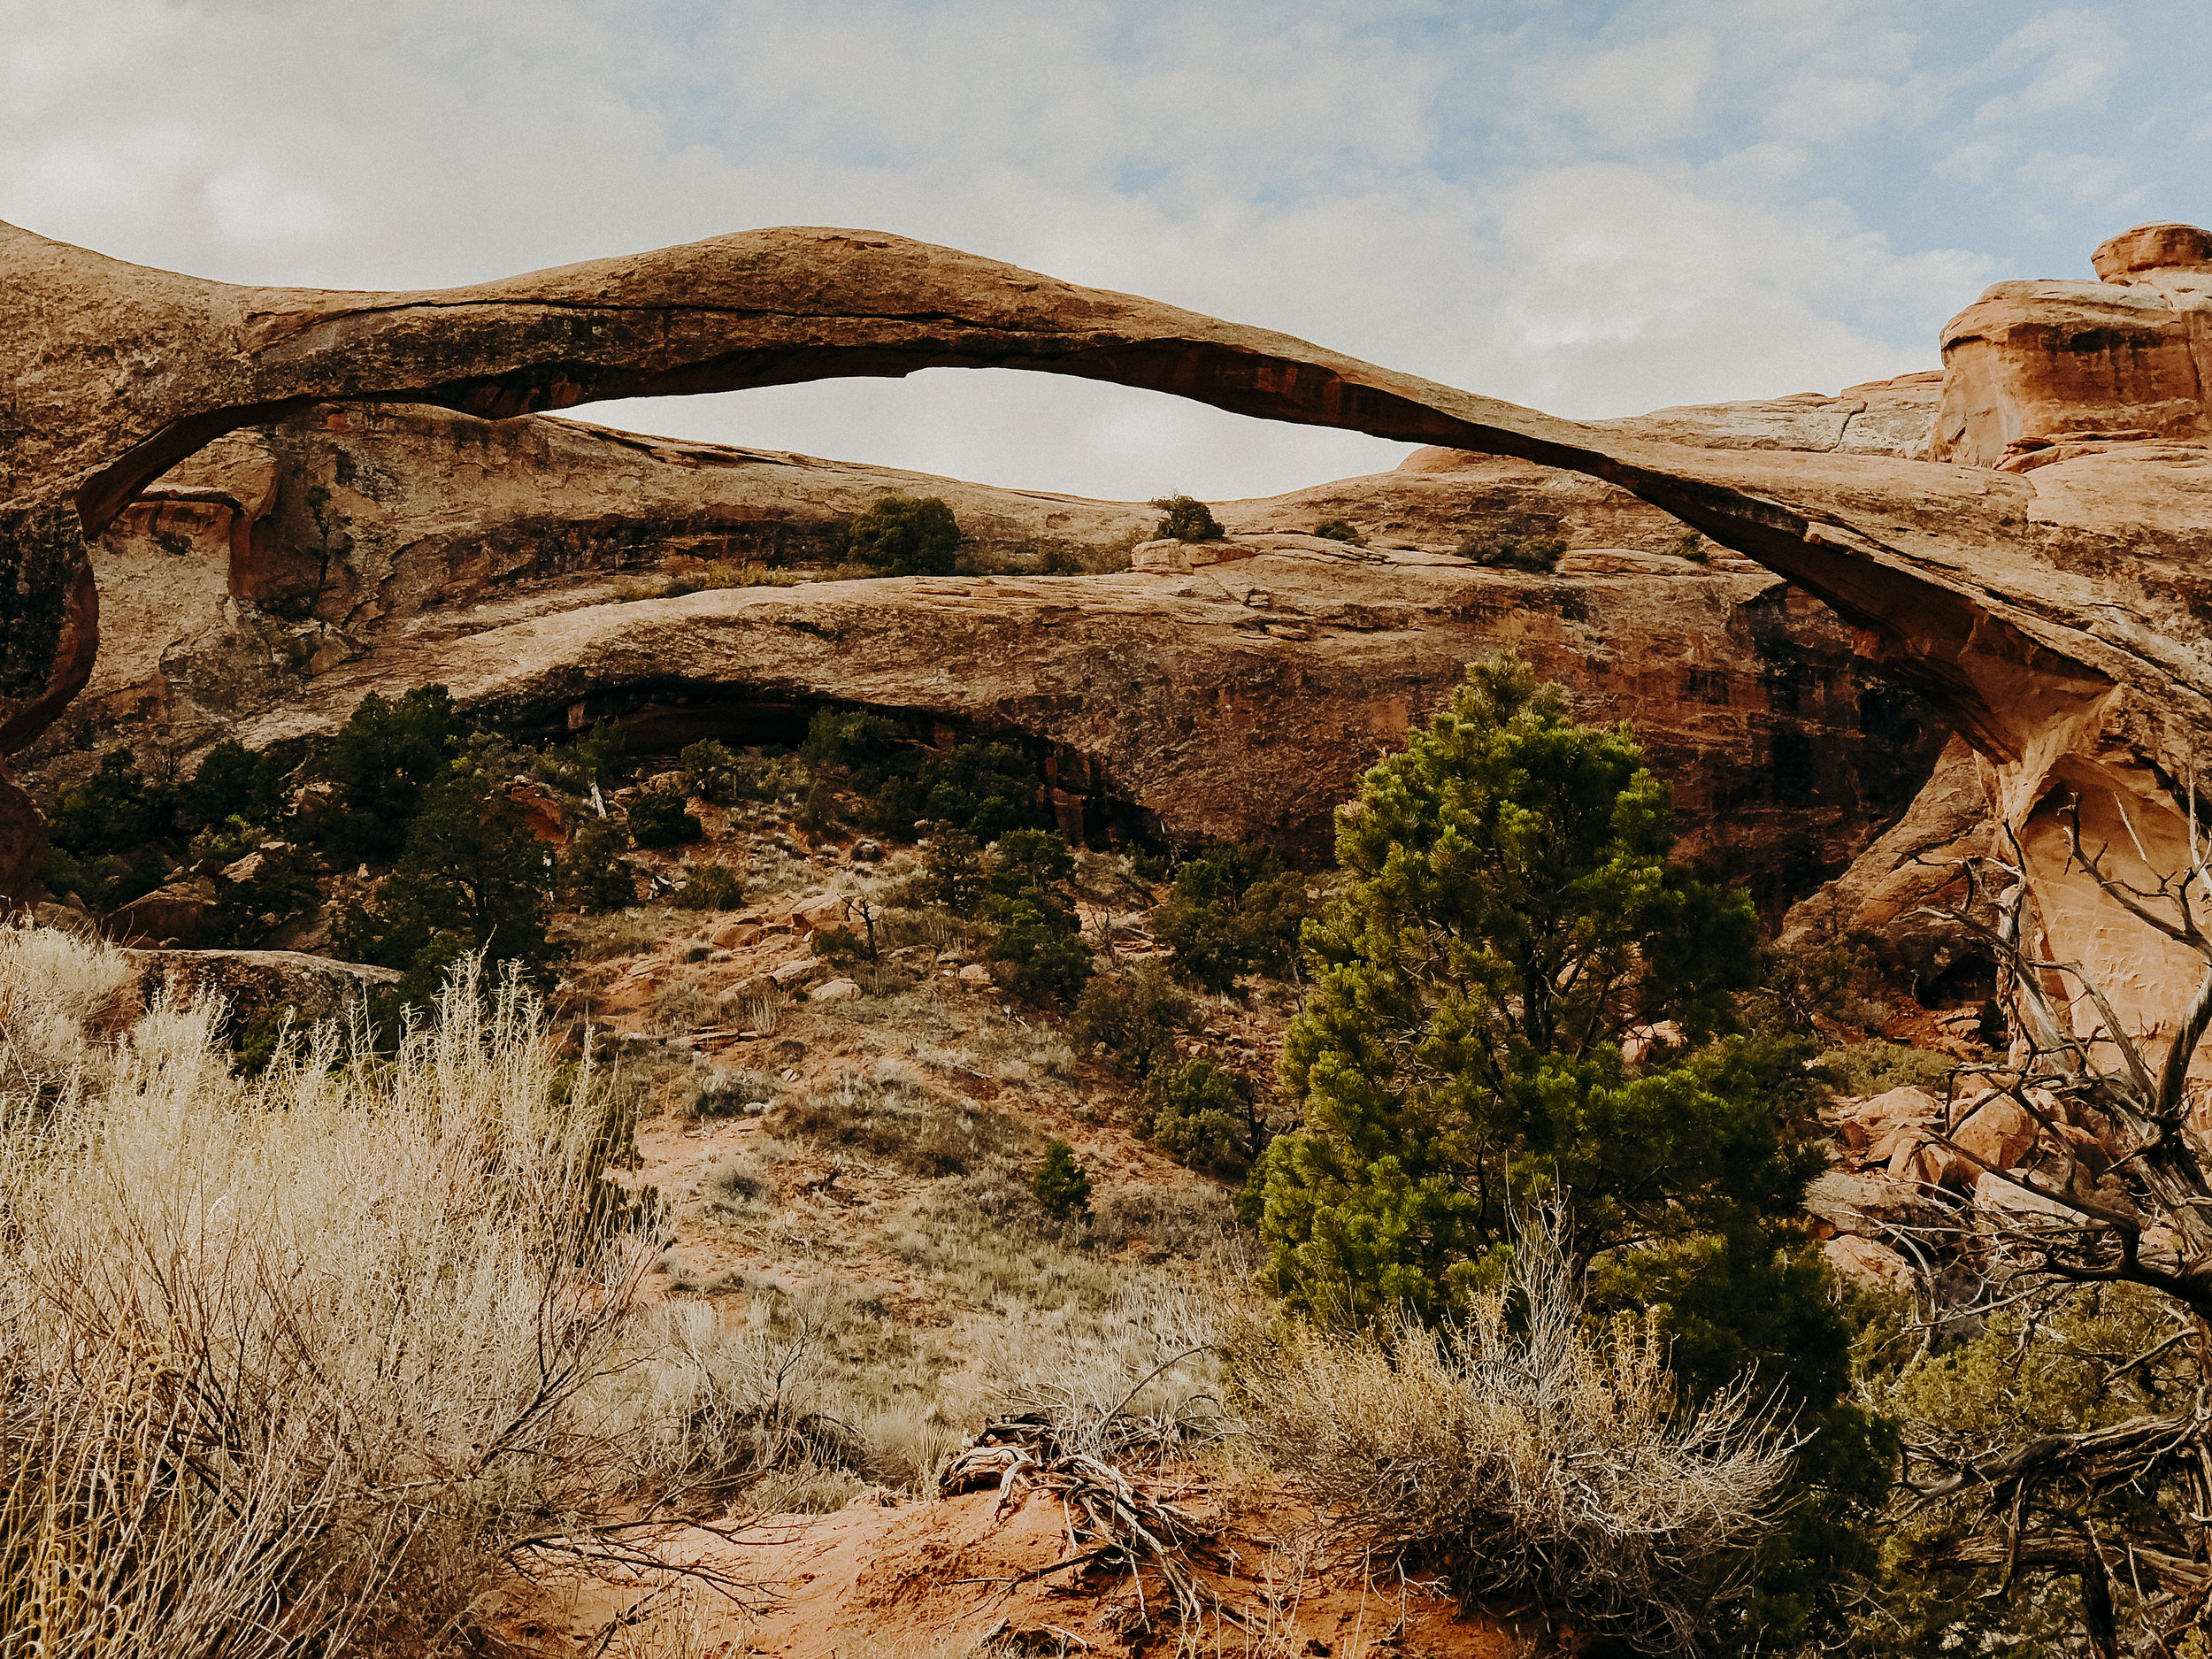 visit-arches-national-park-what-to-do-6.jpg